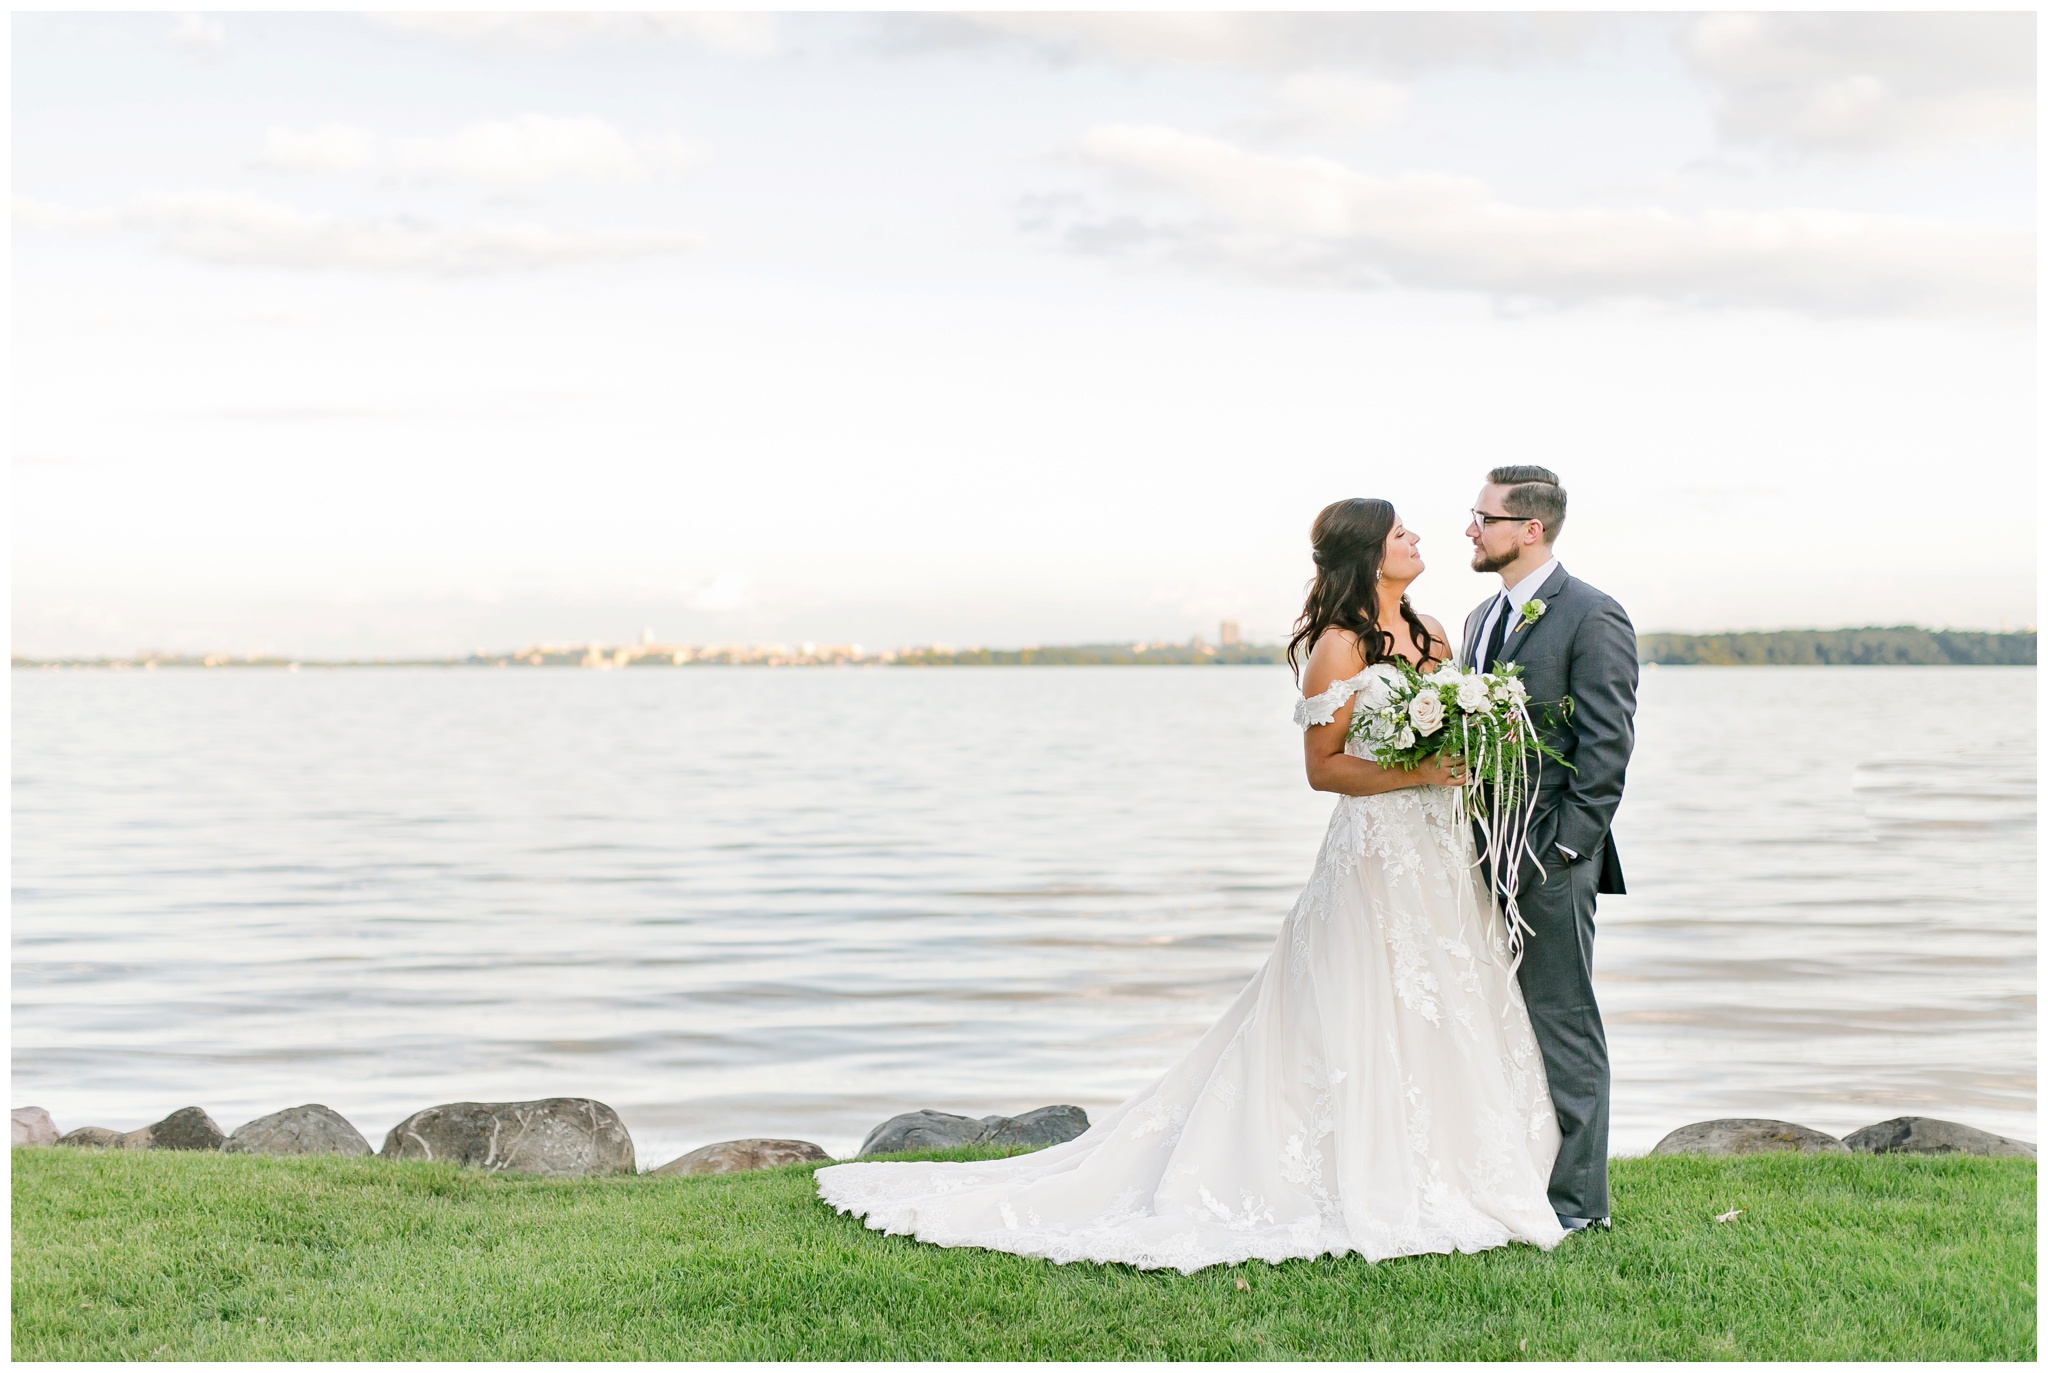 bishops_bay_country_club_wedding_middleton_wisconsin_caynay_photo_4740.jpg